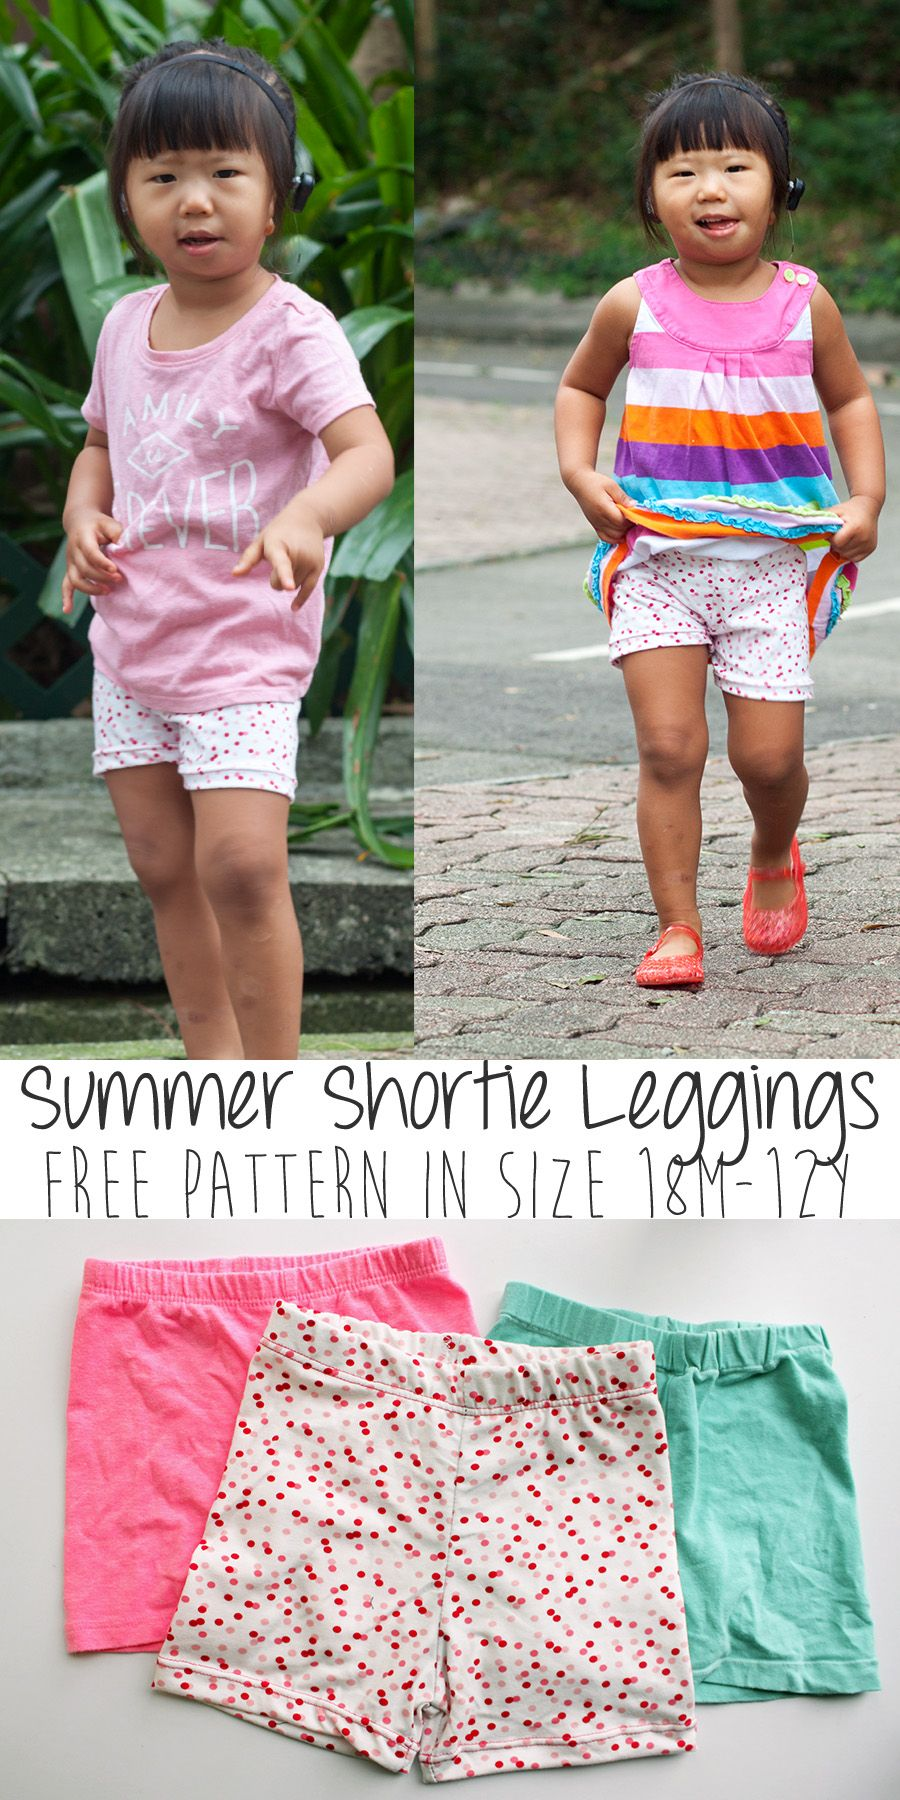 Shortie leggings free pattern perfect for summer size 18m 12y from shortie leggings free pattern perfect for summer size from life sew savory baby patterns kids clothes jeuxipadfo Gallery